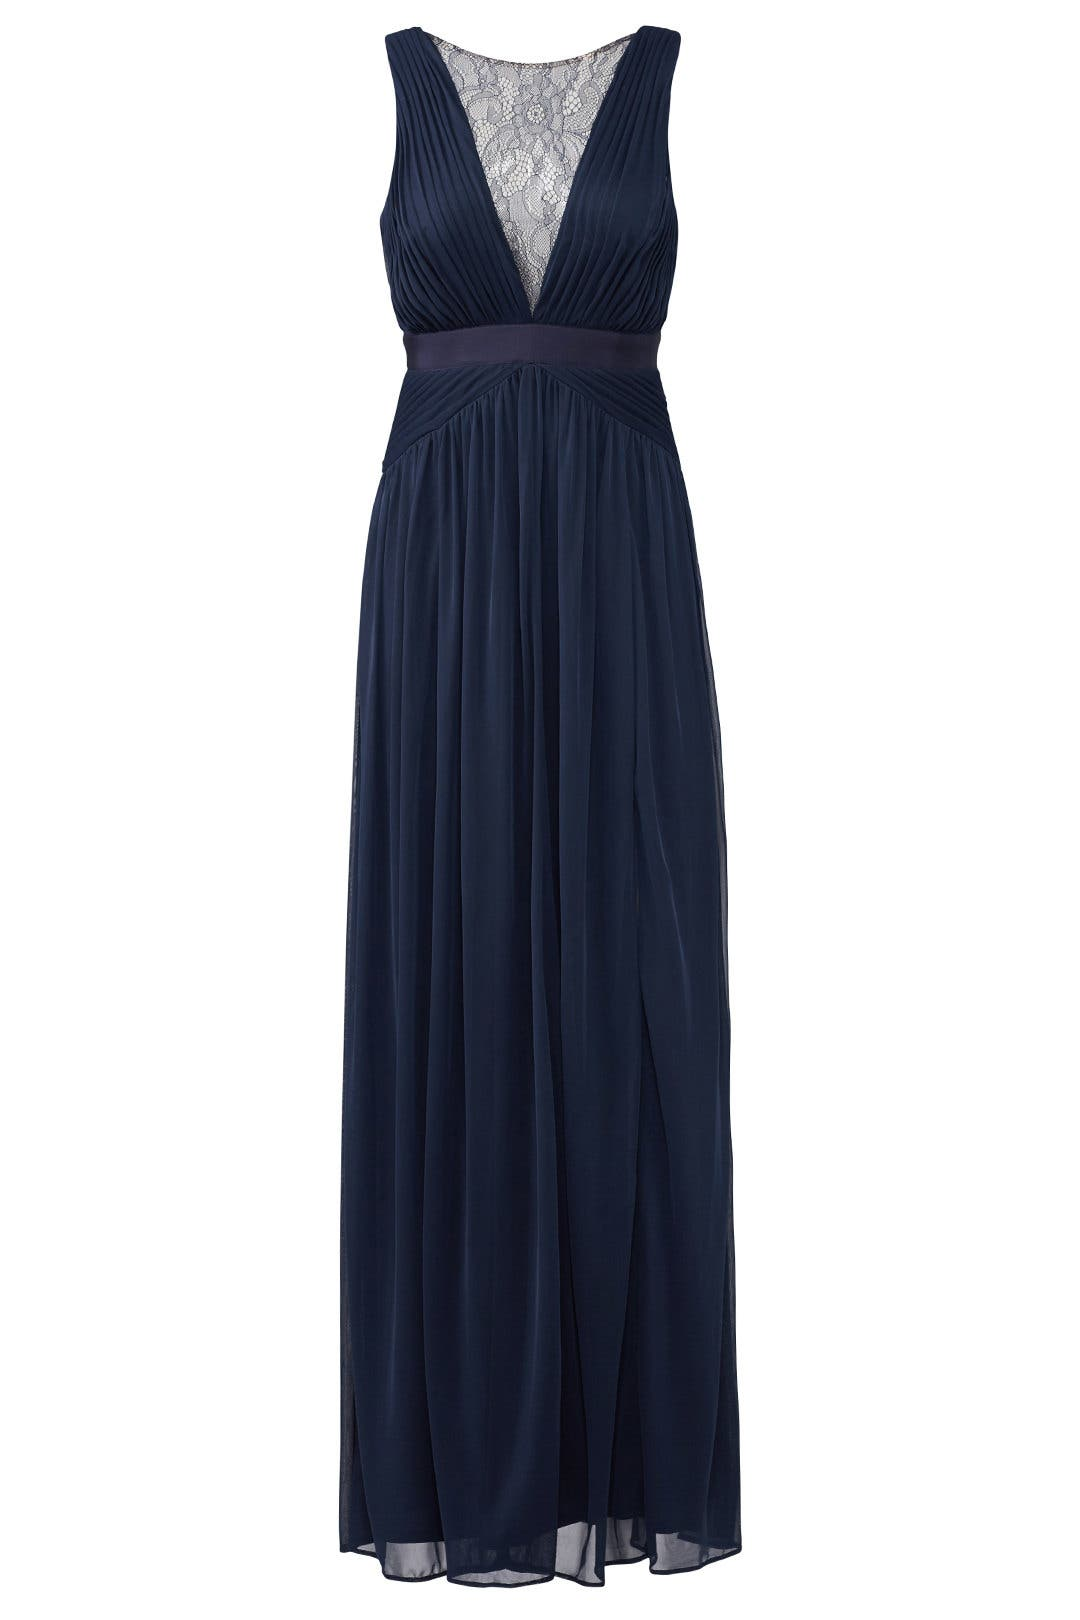 Midnight Illusion Gown by Adrianna Papell for $40 - $60 | Rent the ...